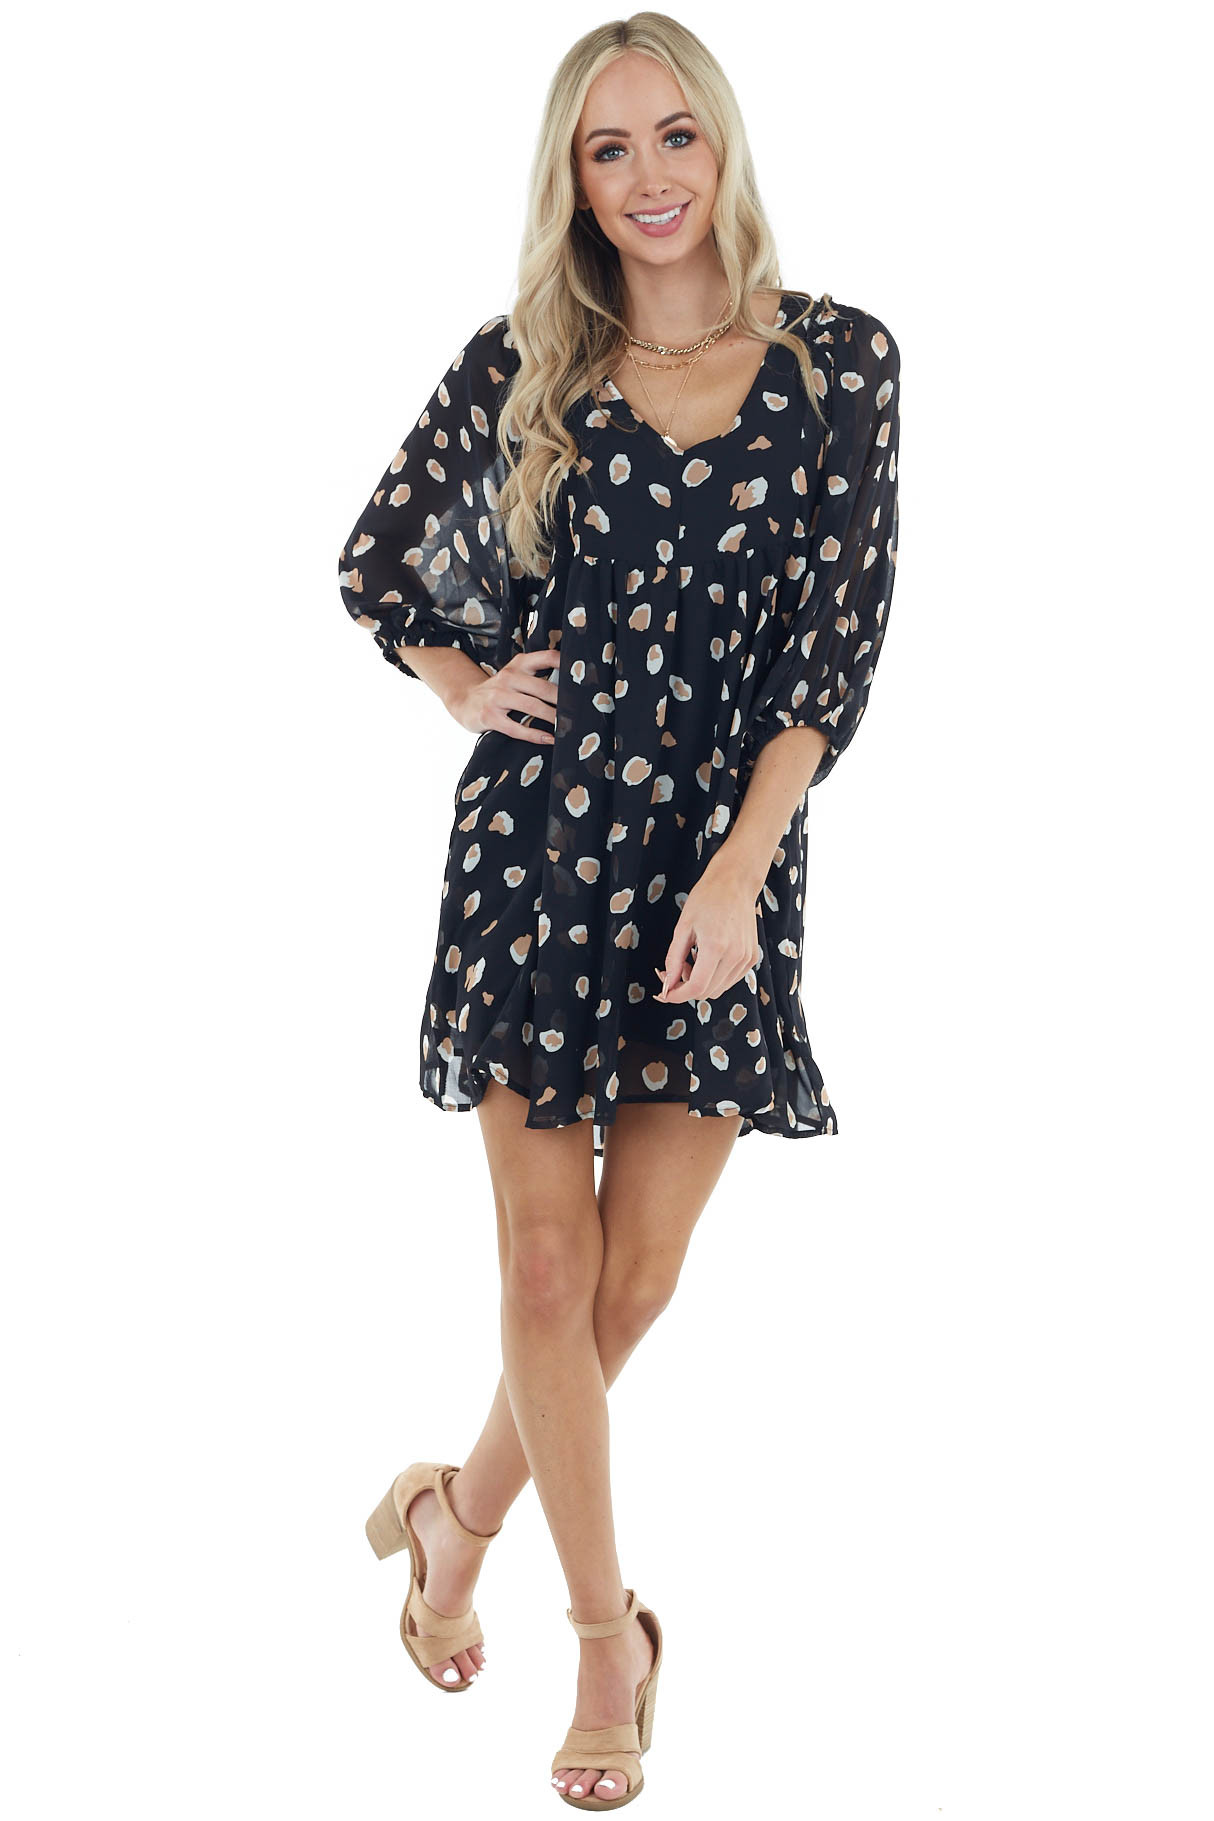 Black Leopard Print Babydoll Dress with Puff Sleeves